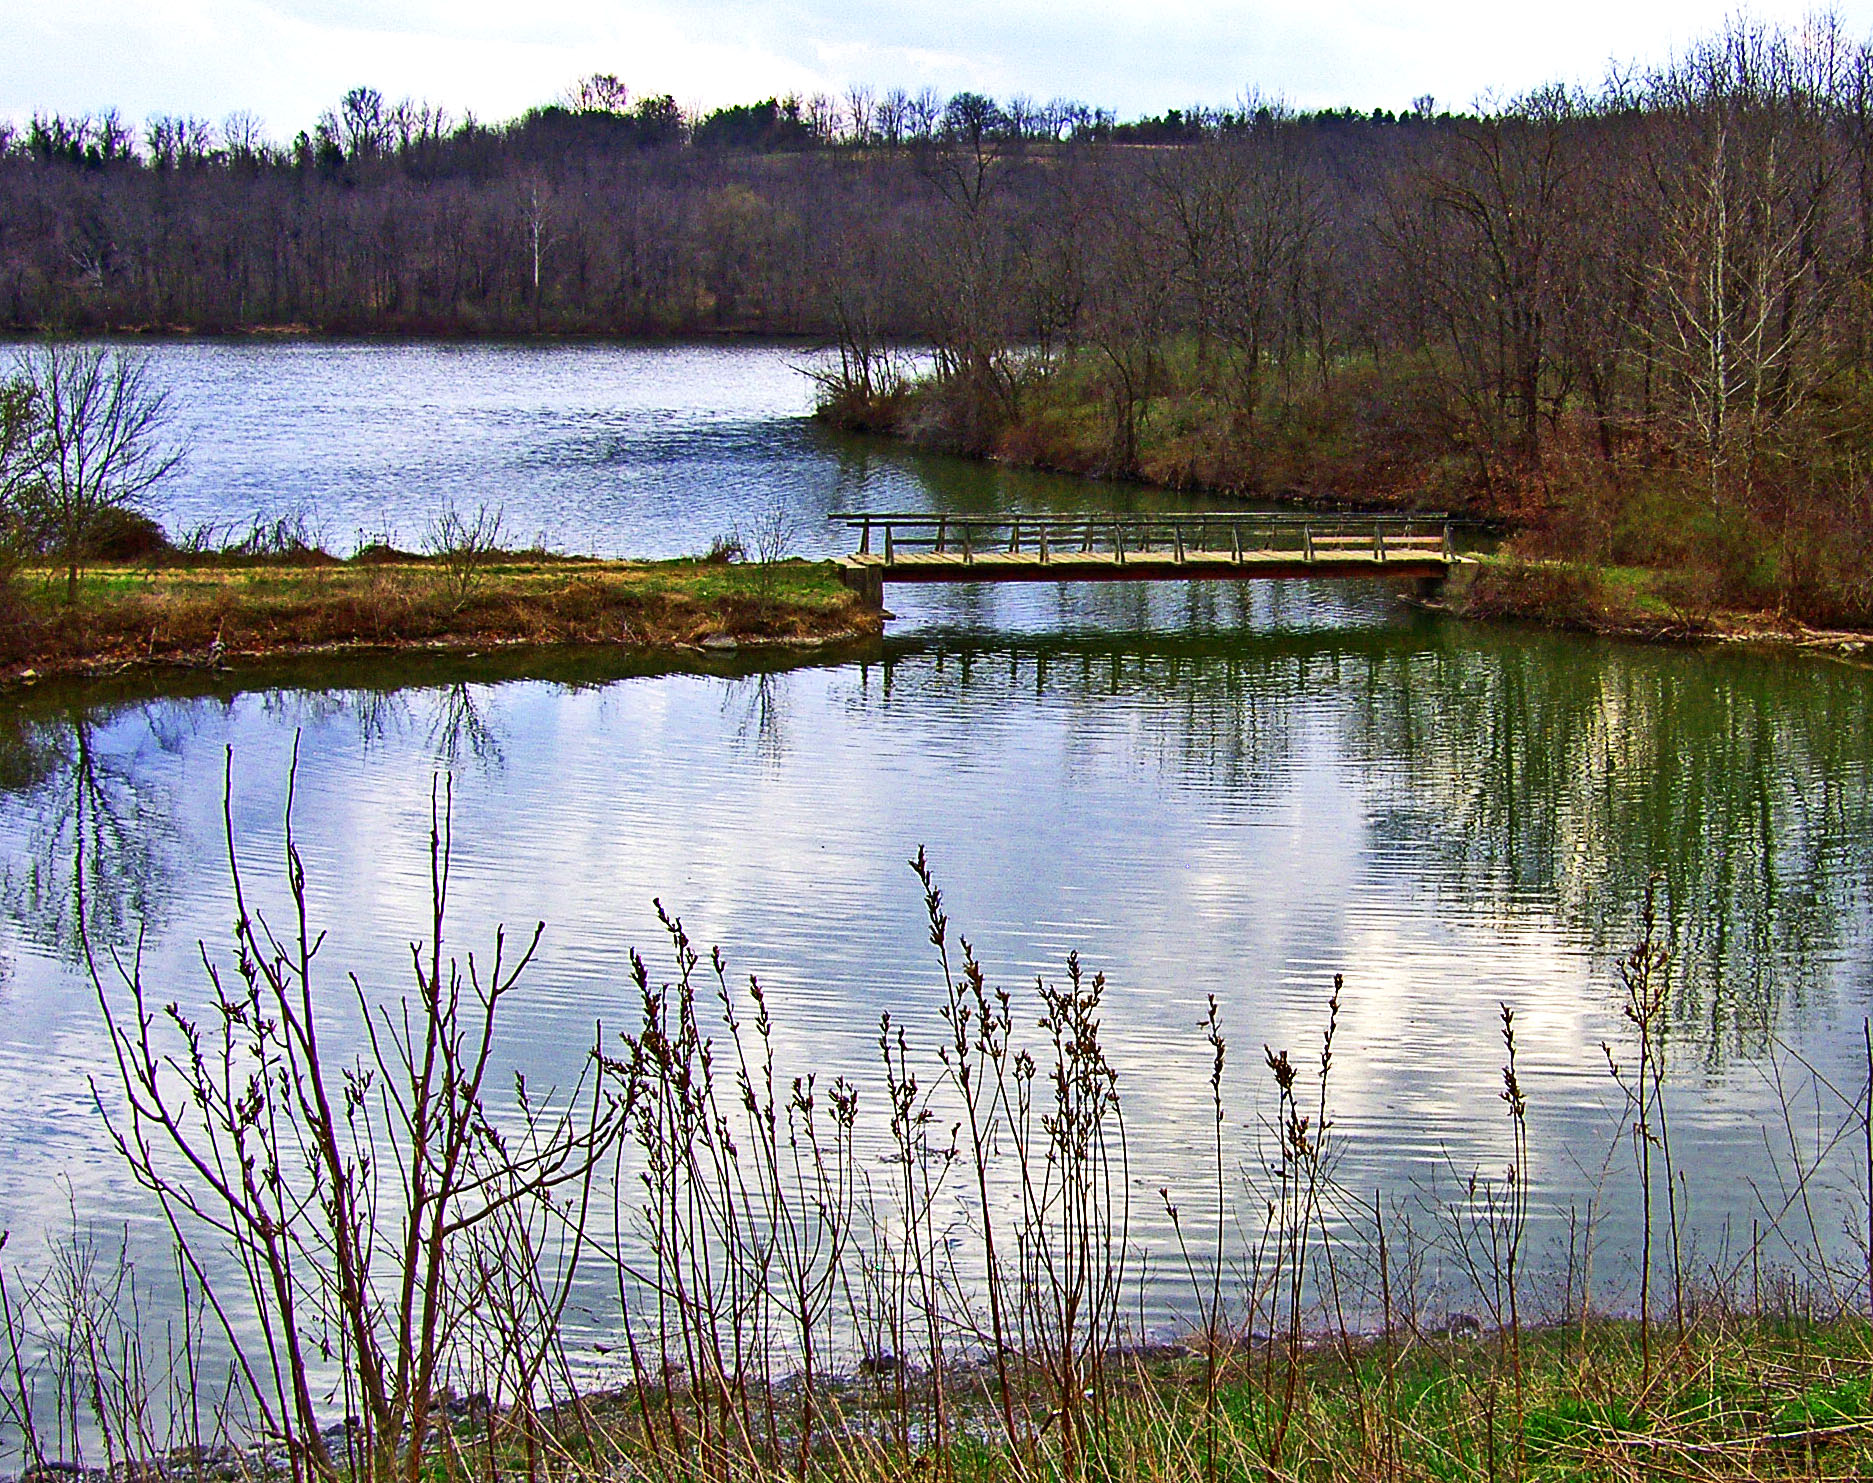 Trail Bridge Over Blue Marsh Lake